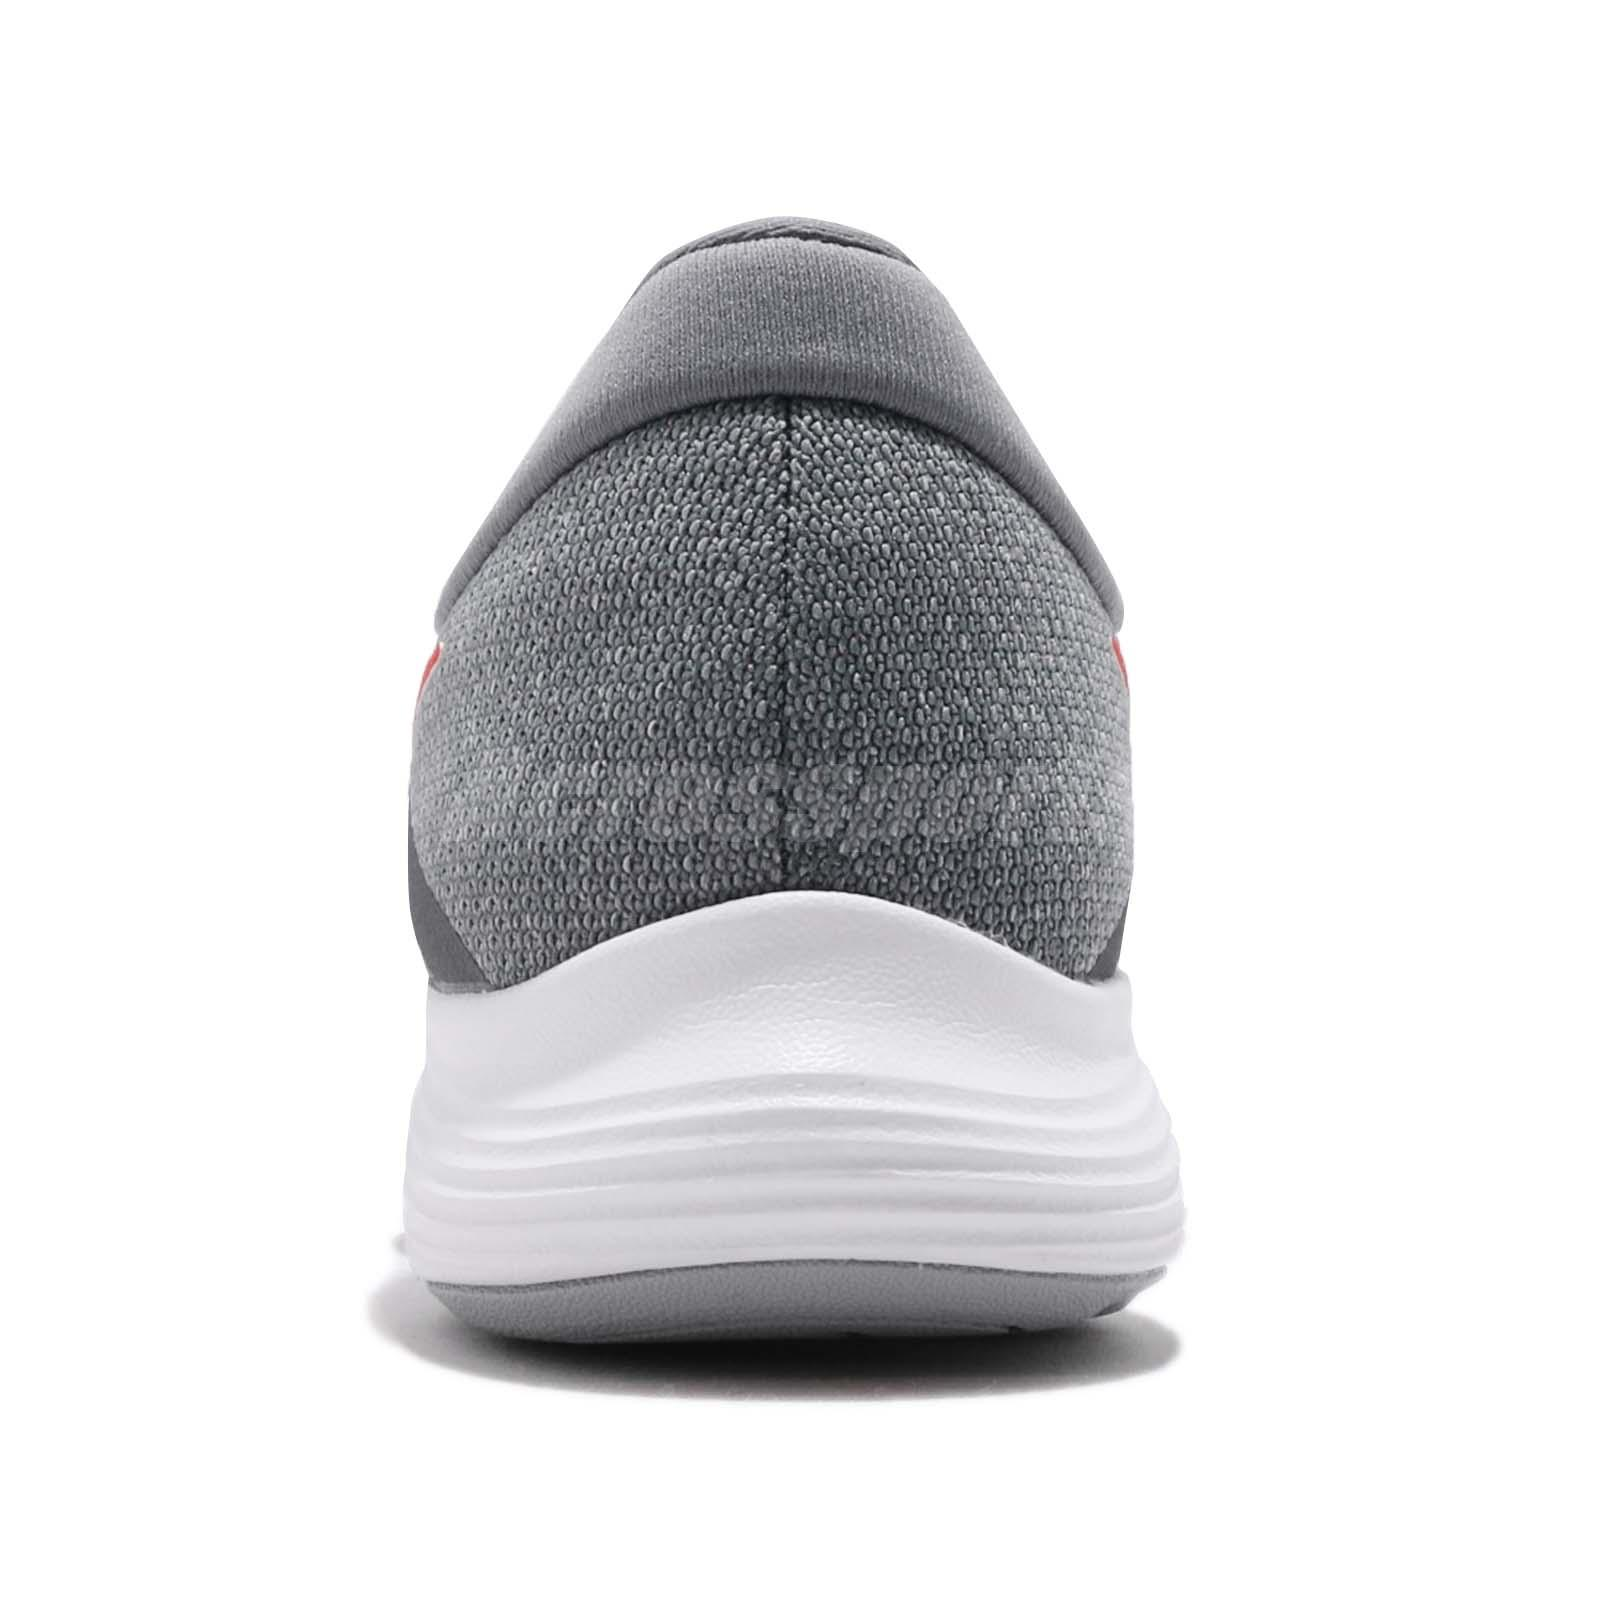 8693545bc3612 Nike Revolution 4 IV Grey Red White Men Running Shoes Sneakers ...